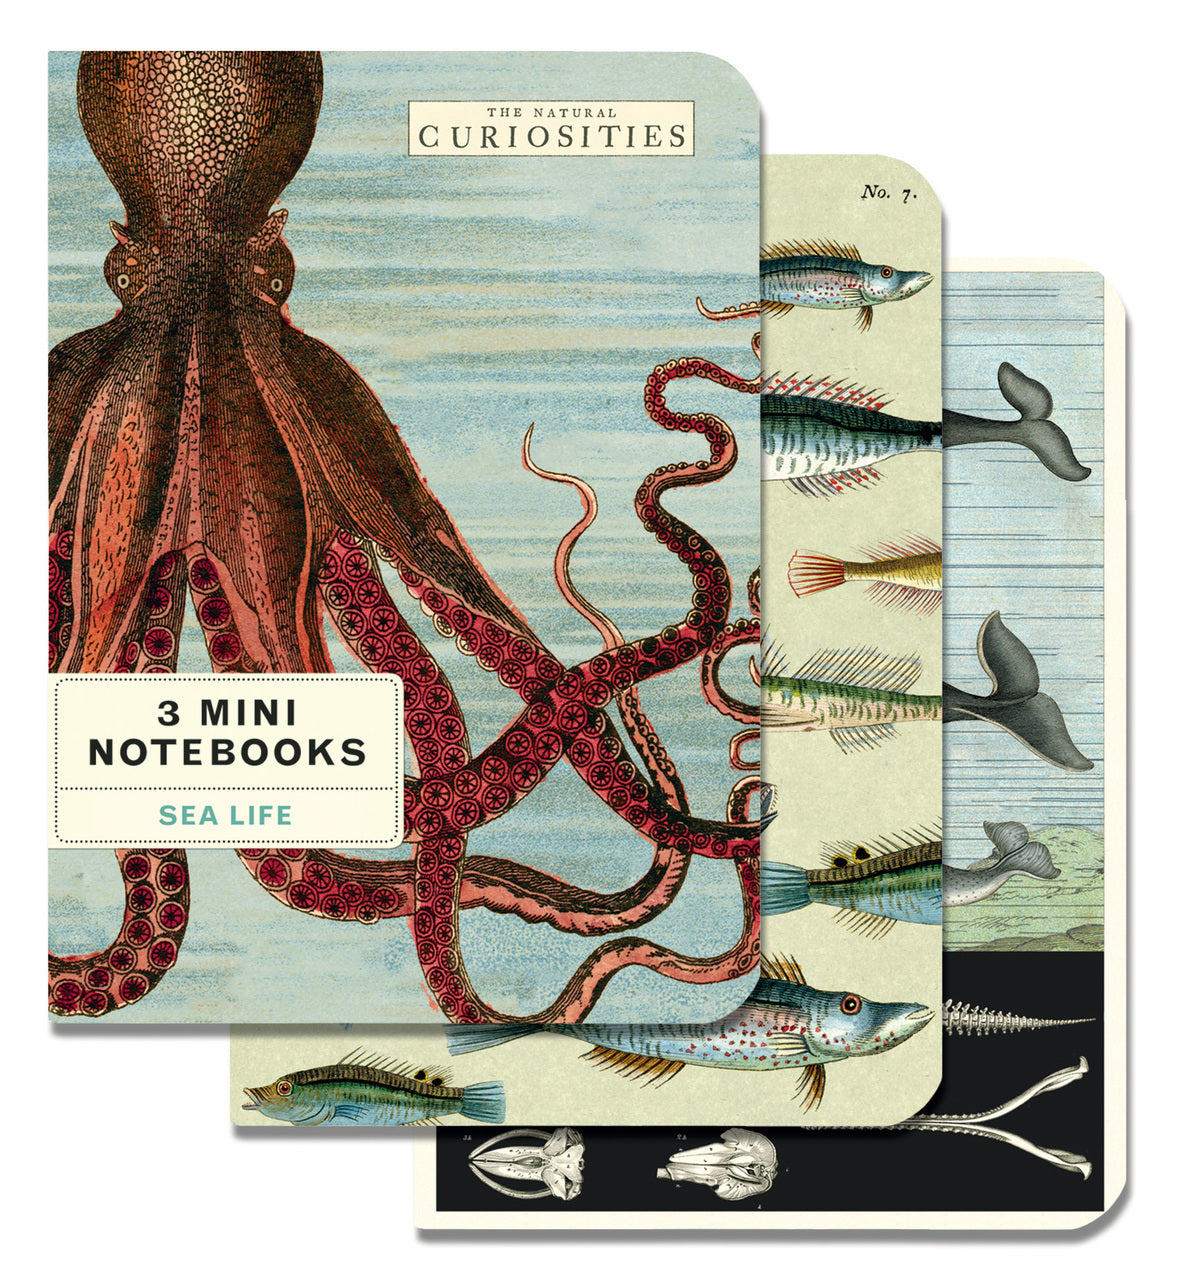 Cavallini & Co. Sea Life Mini Notebook Set features three notebooks with vintage scientific images of undersea creatures.